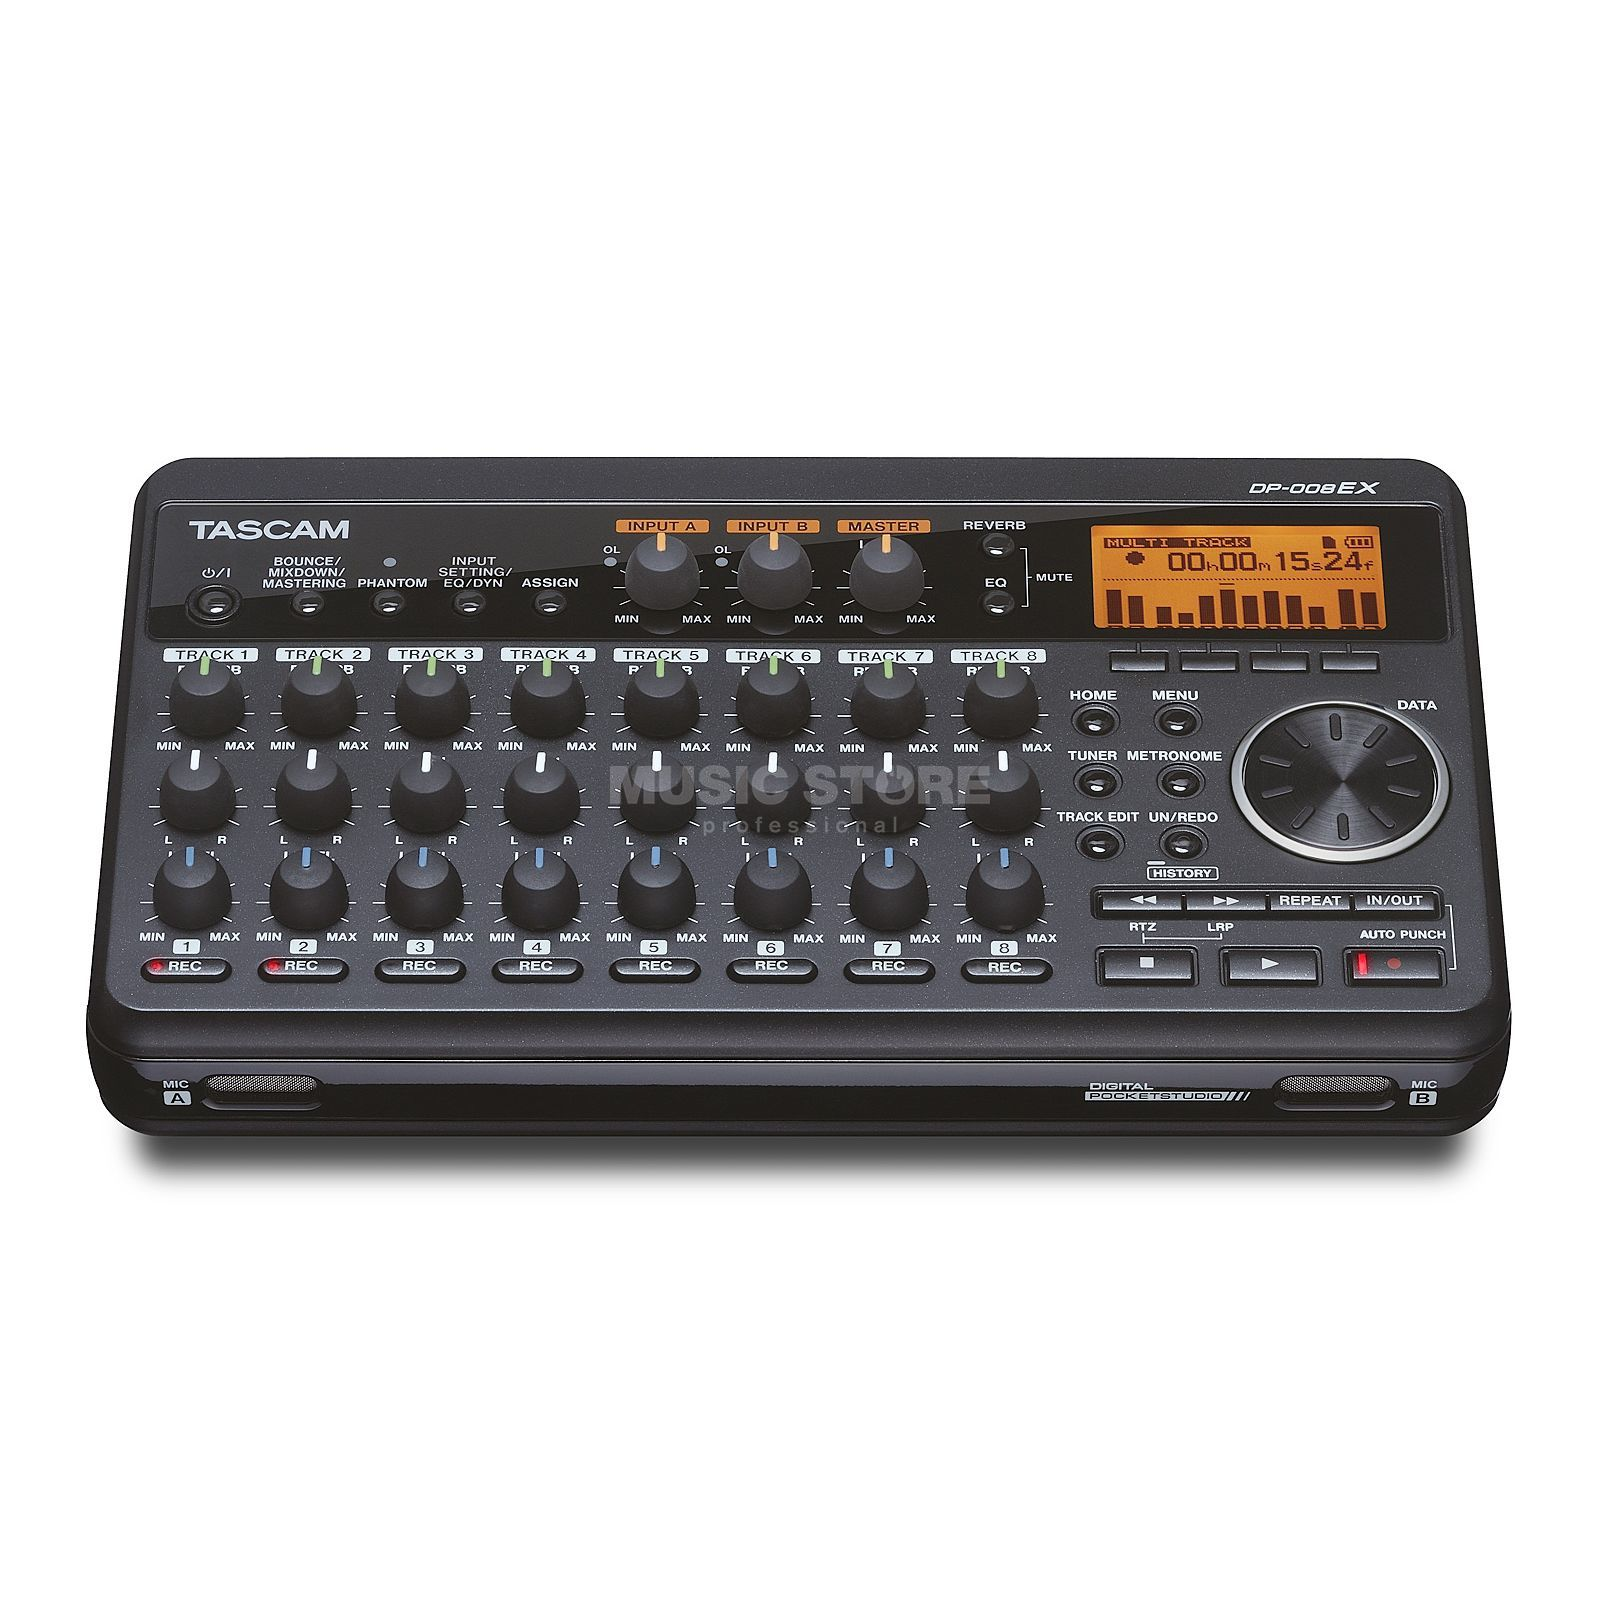 Tascam DP-008EX Digitales 8-Spur-Portastudio Product Image